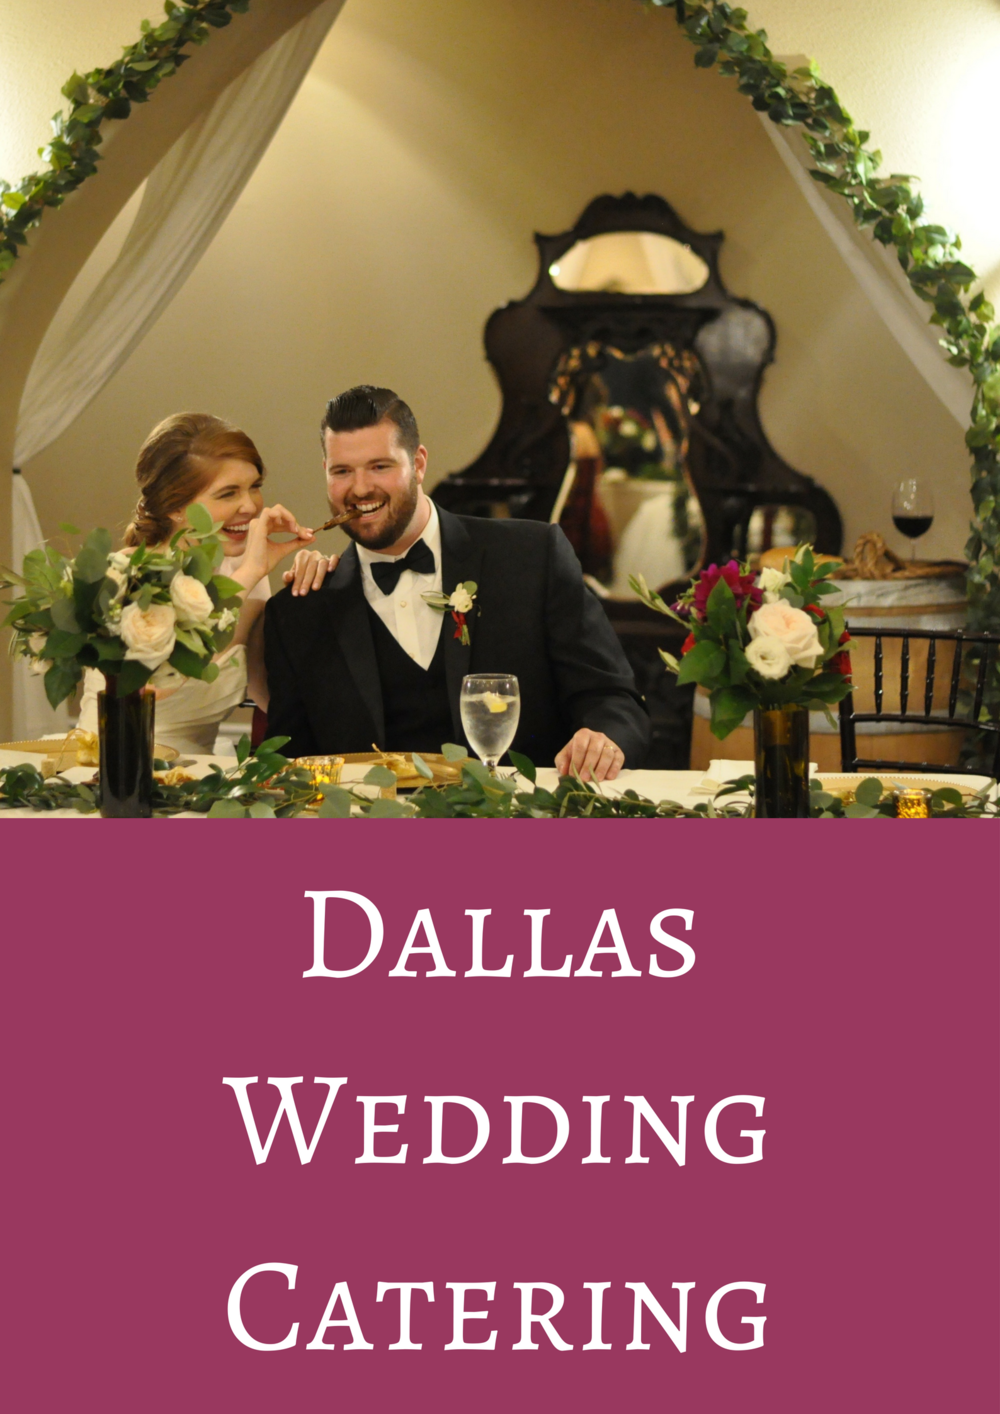 dallas wedding catering, culinary art catering, wedding food, dallas wedding, wedding tips, buffet dinner, plated dinner, stations, the castle at rockwall, married, marriage